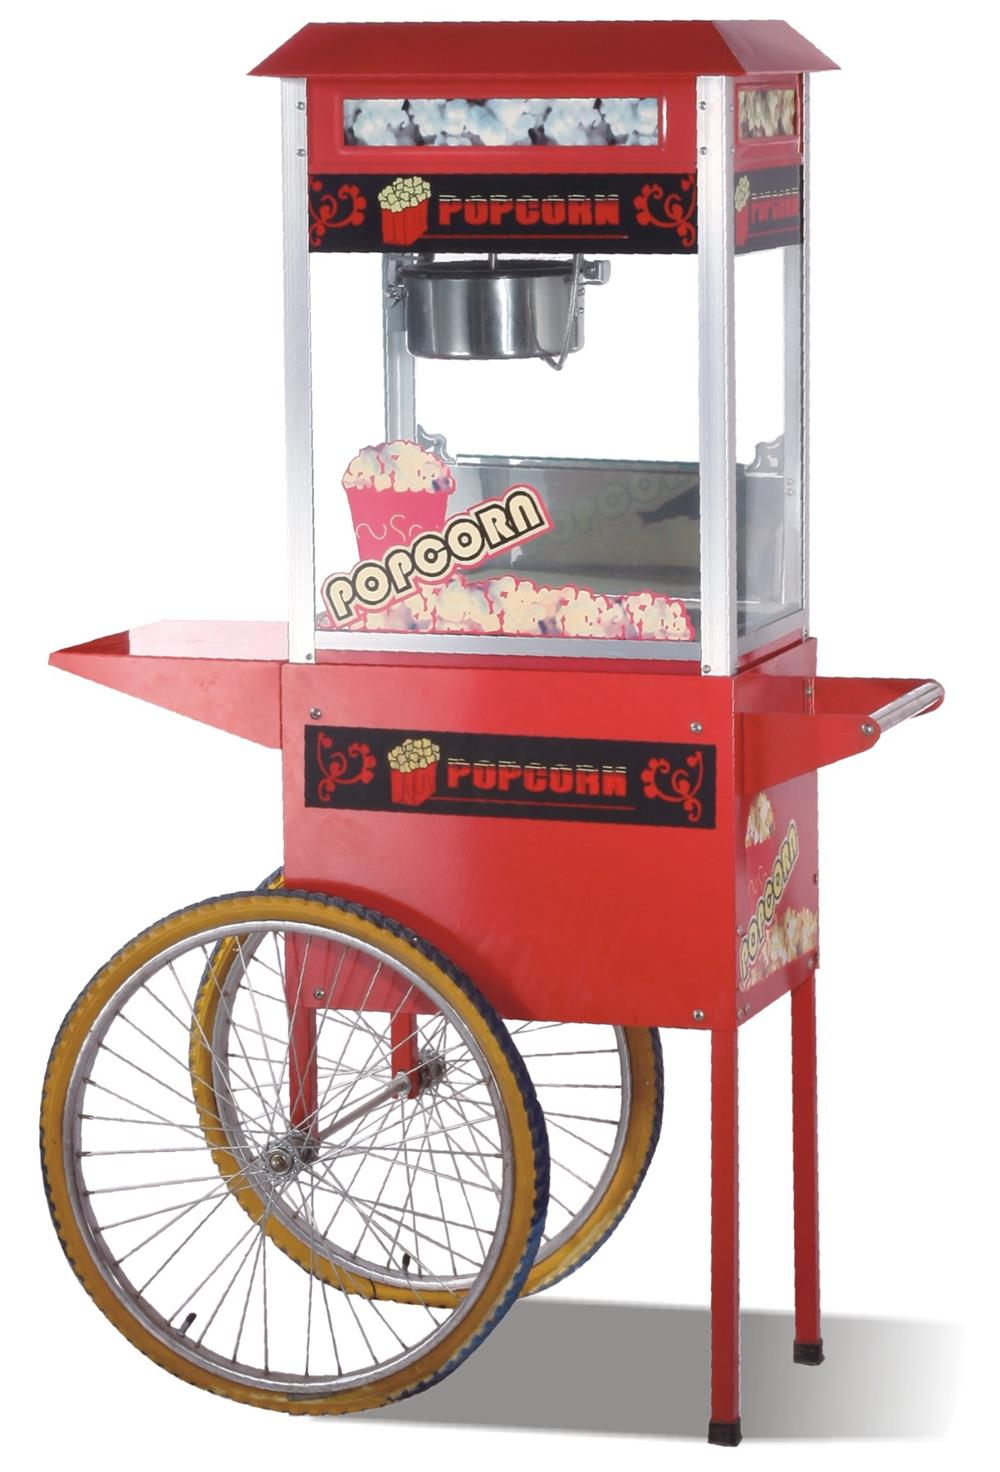 commercial popcorn machine price industrial stainless steel popcorn maker party popper machine for sale